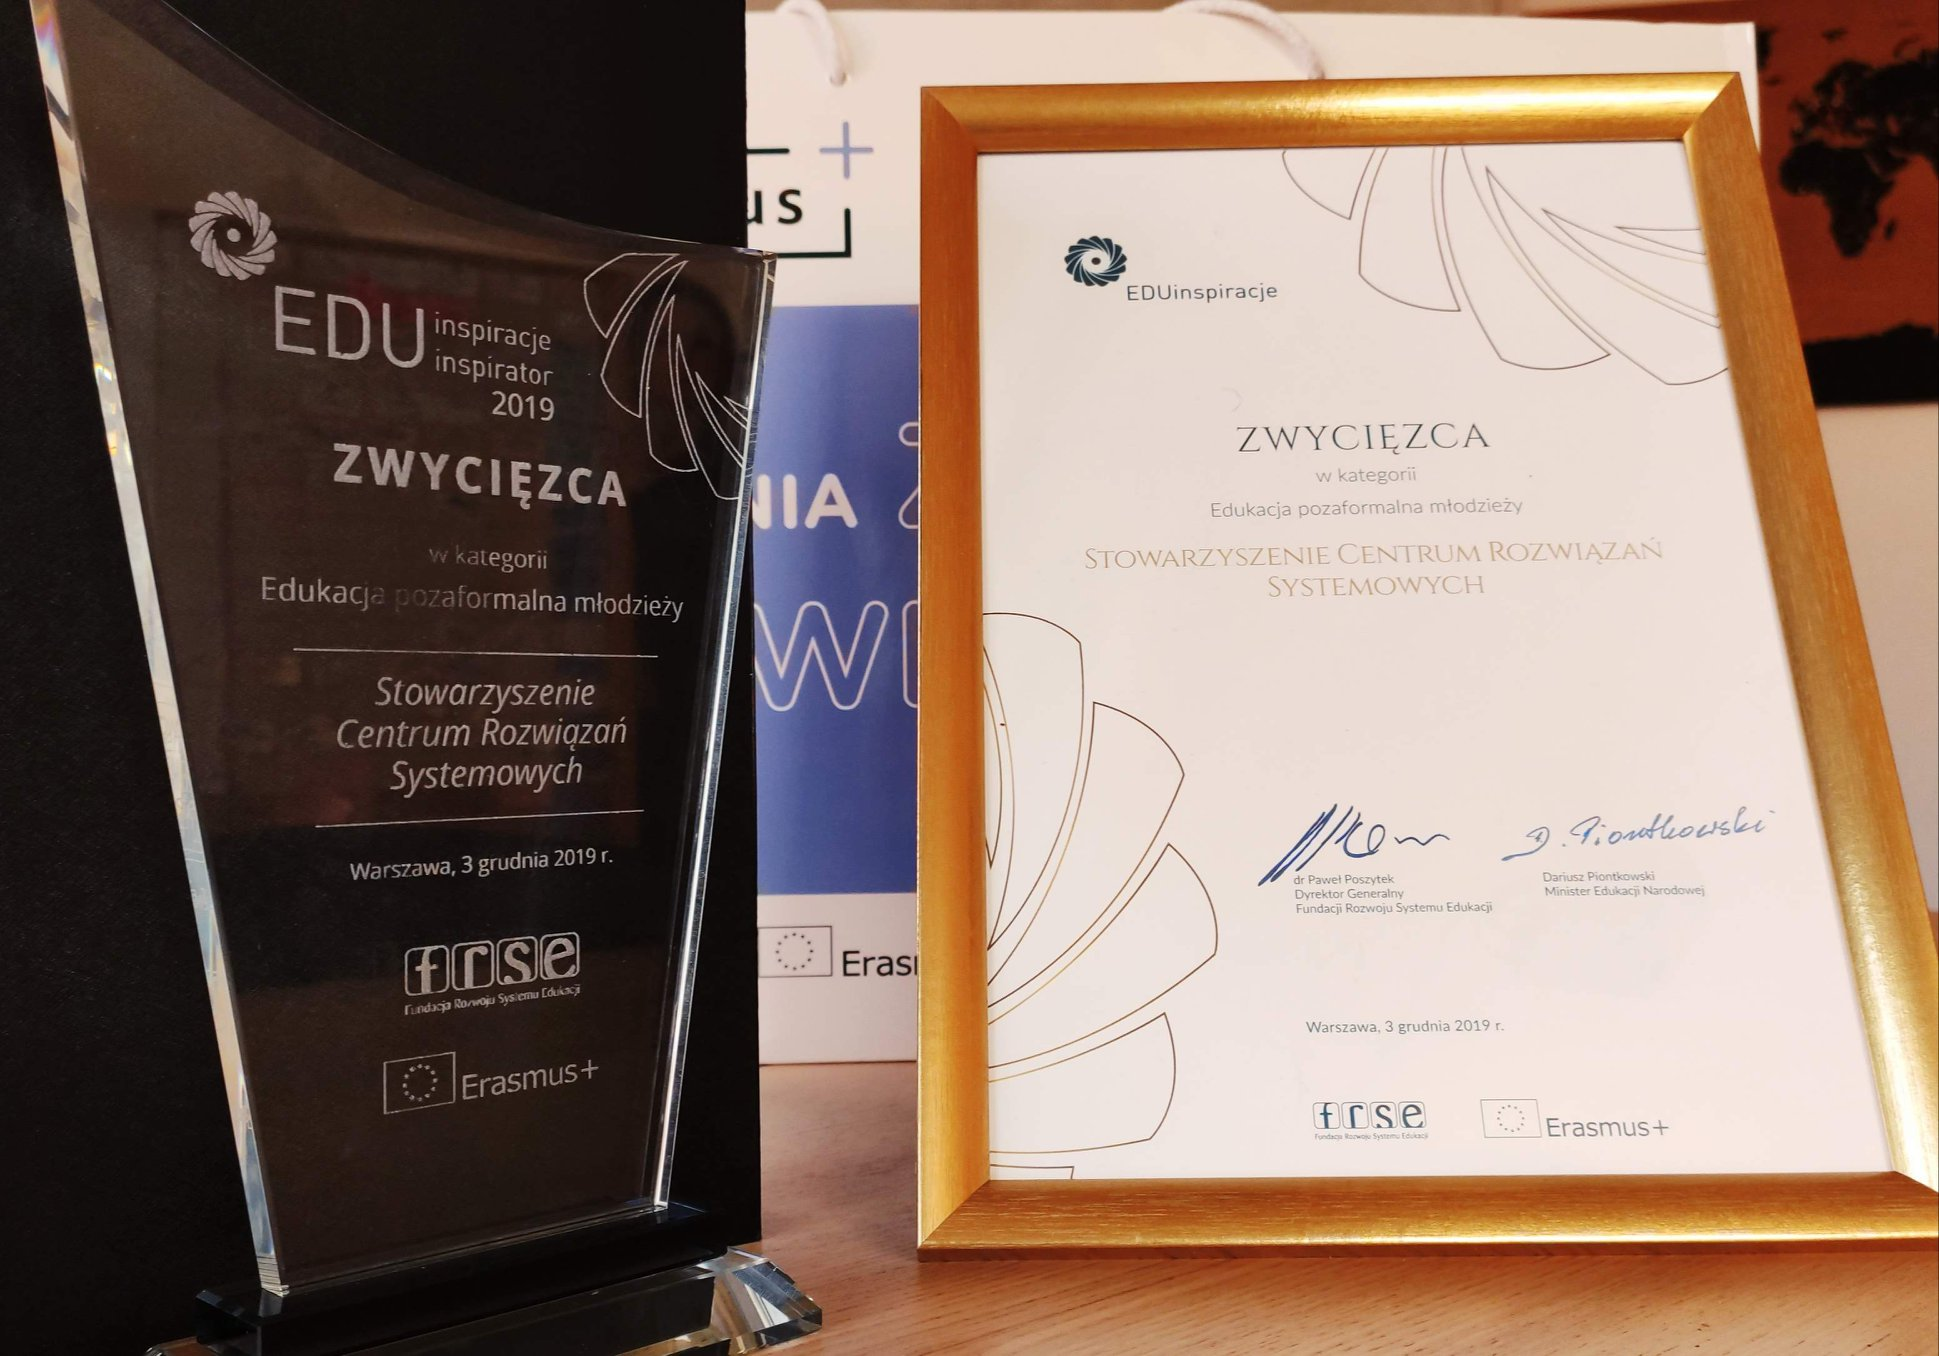 New Shores among the EduInspiracje Award winners